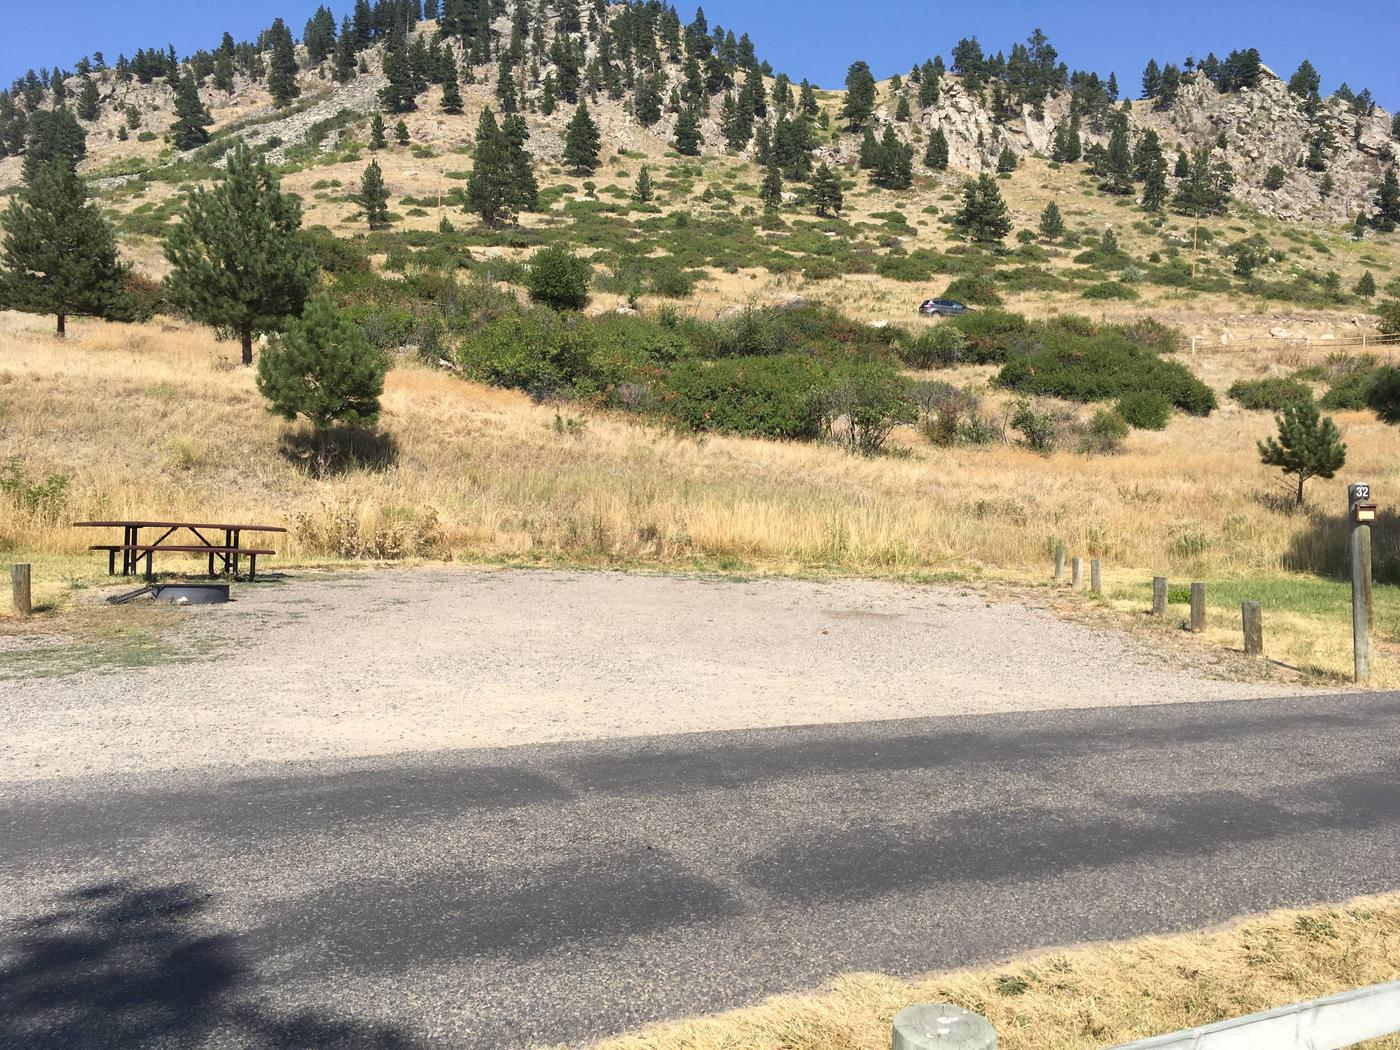 Site 32 BLM Holter Lake Campground. Paved access to campsite. Graveled campsite with picnic table and fire pit. Trees and shrubs above campsite. Campsite is below Beartooth Road.Site 32 BLM Holter Lake Campground.